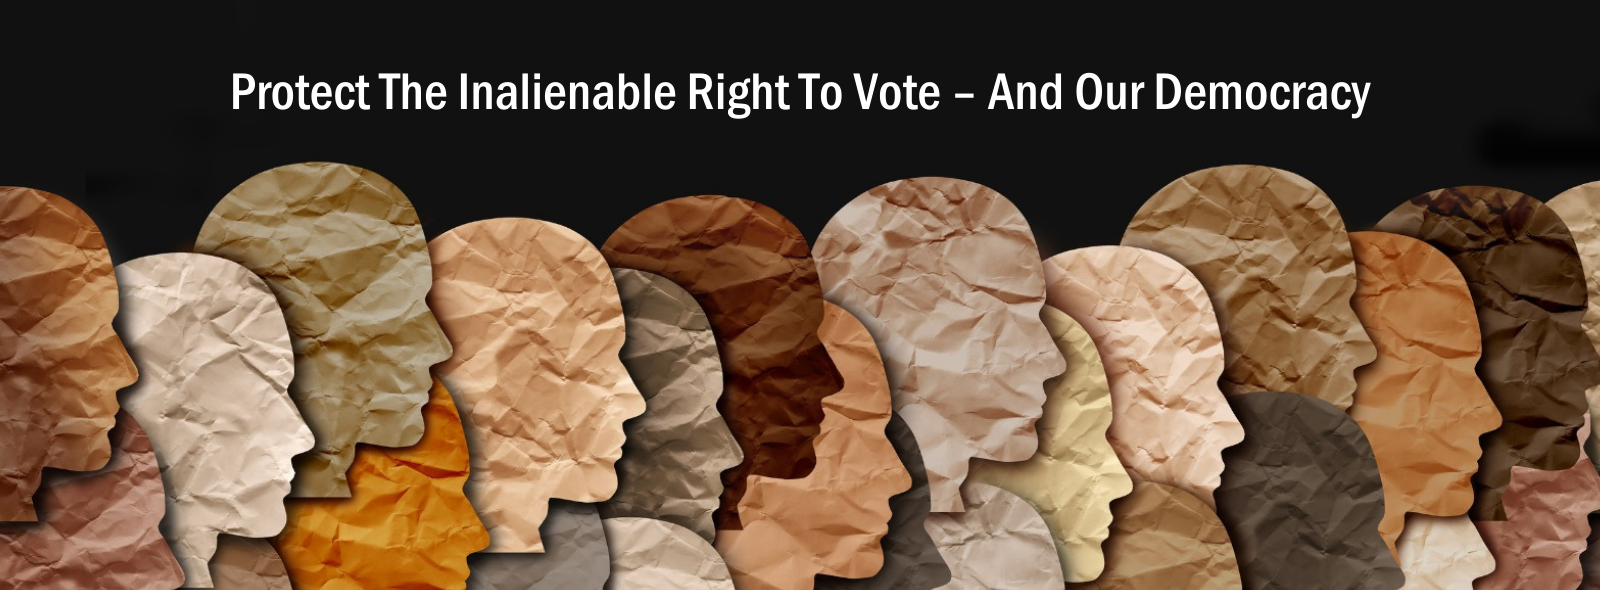 Voting Rights Statement